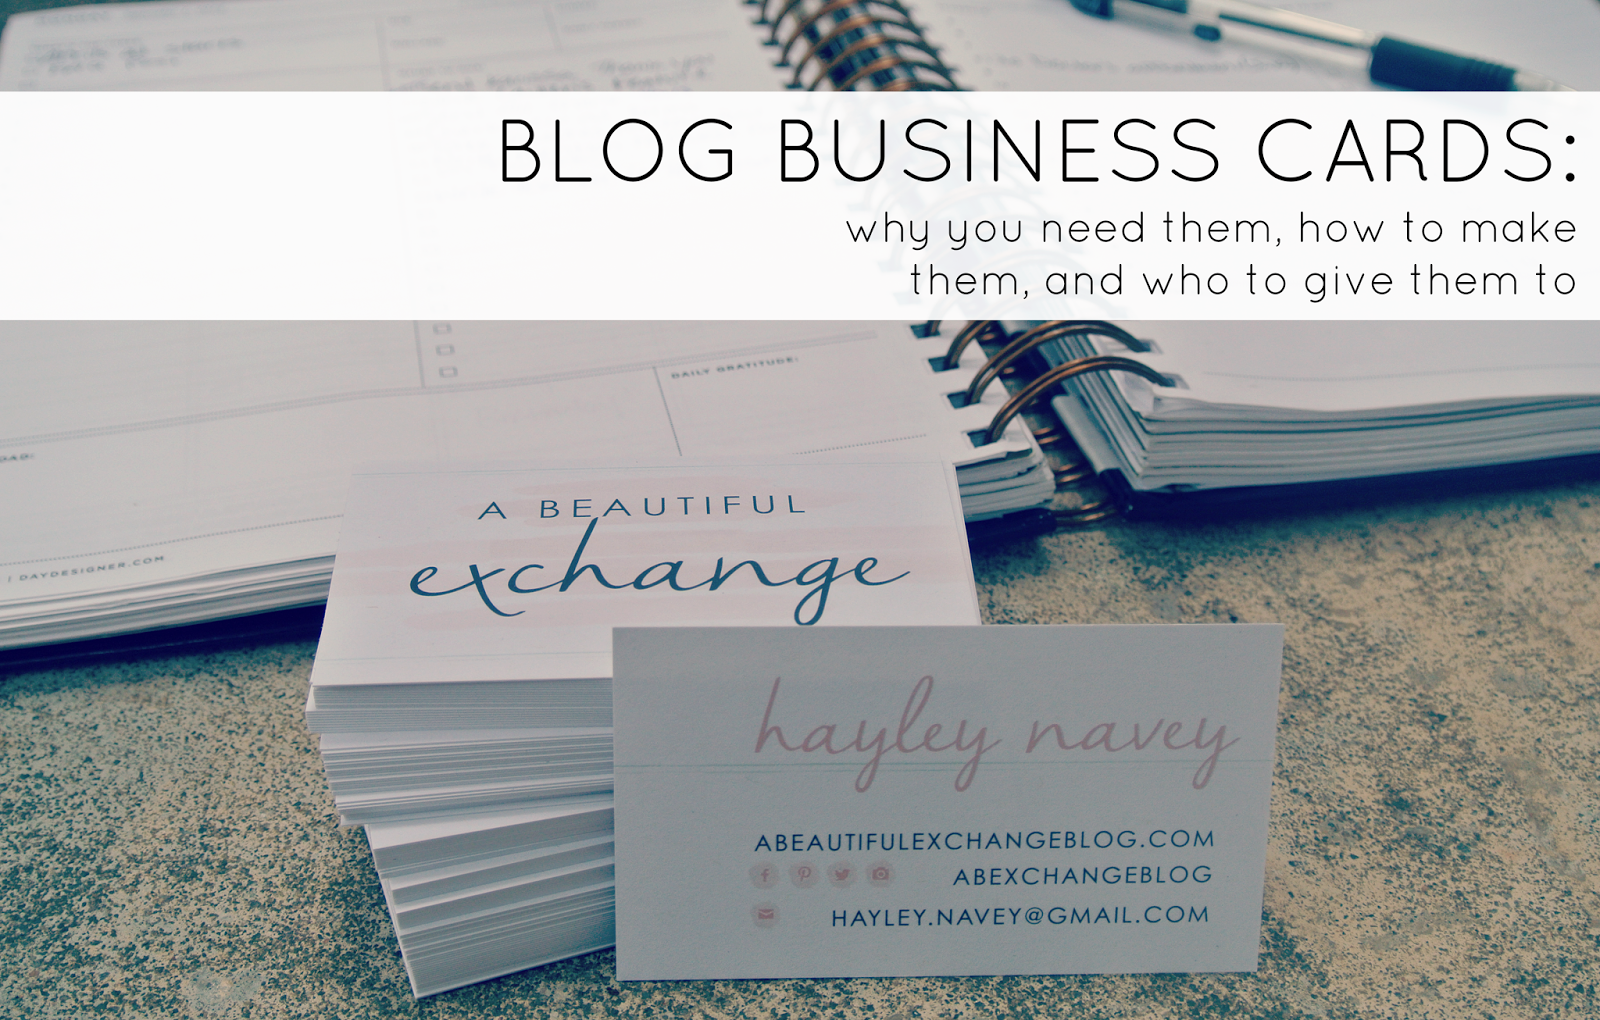 Blog Business Cards: Why, How, and Who